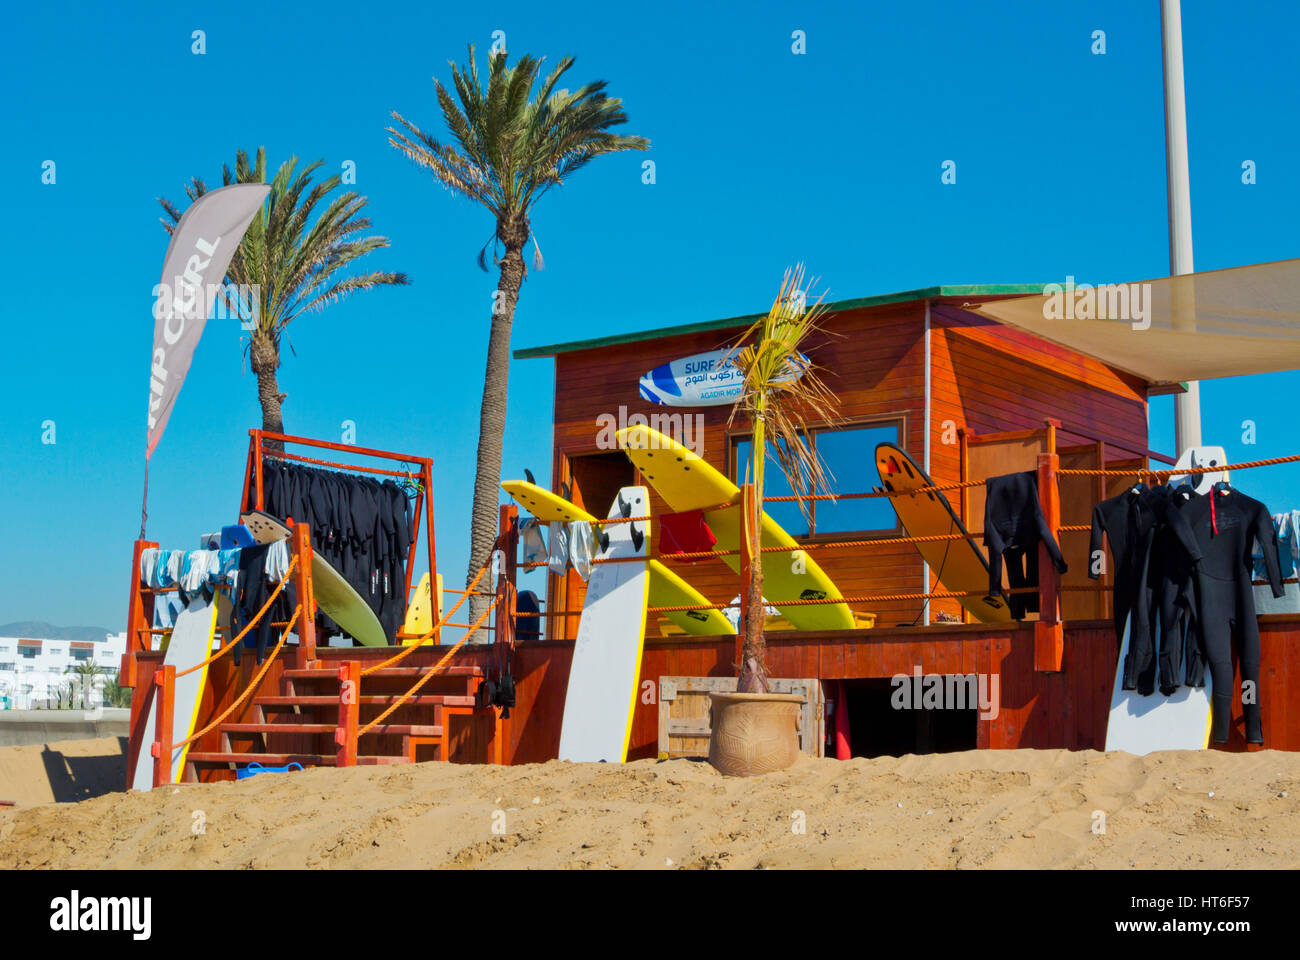 Surf Agadir, surfing school and rental place, beach, Agadir, Morocco - Stock Image